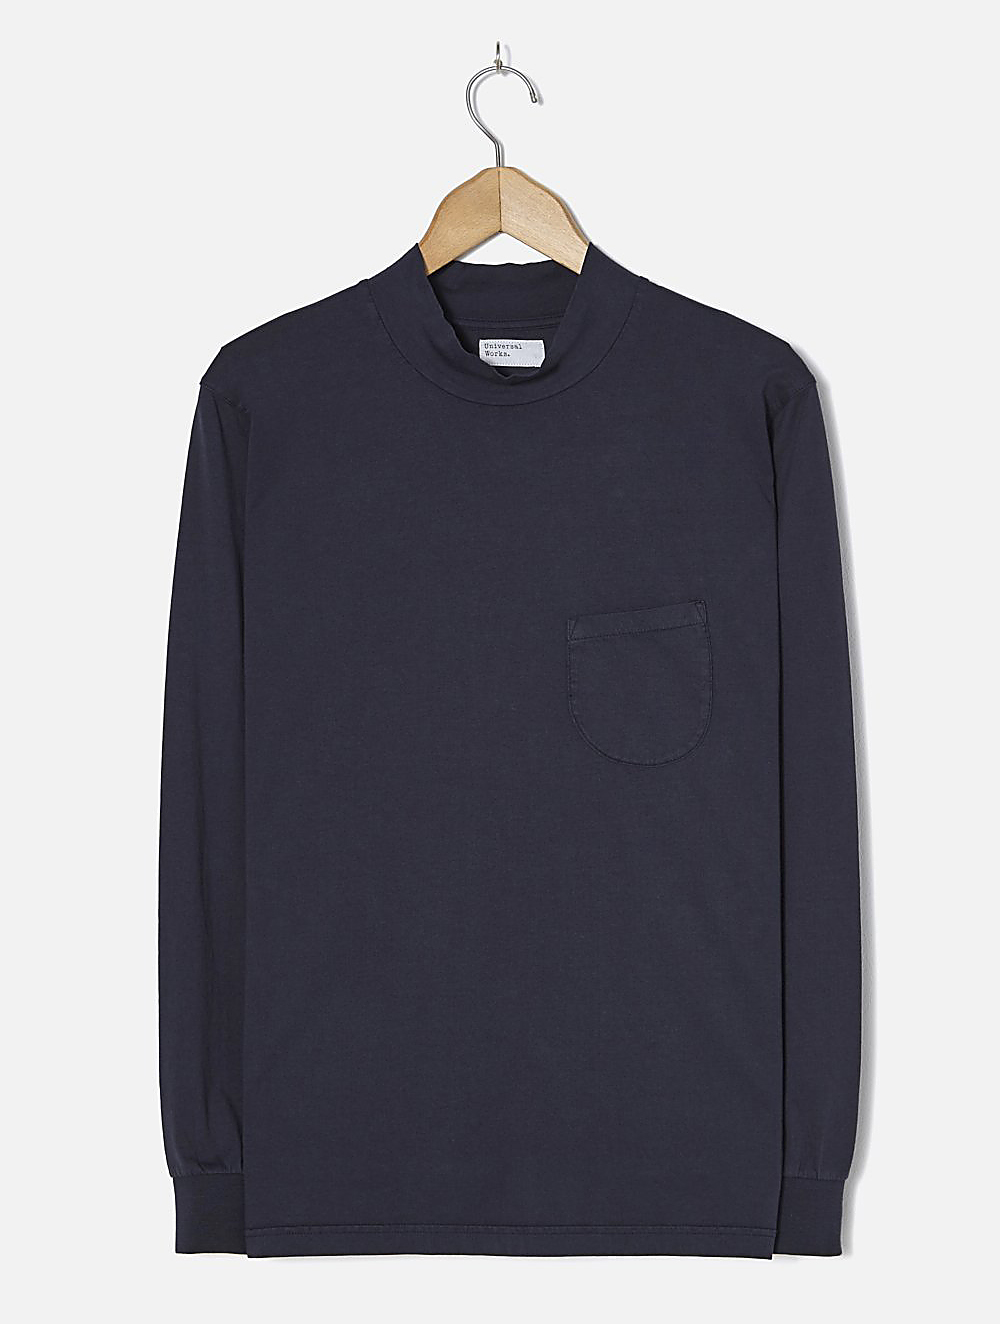 Universal Works Turtle Neck single jersey navy